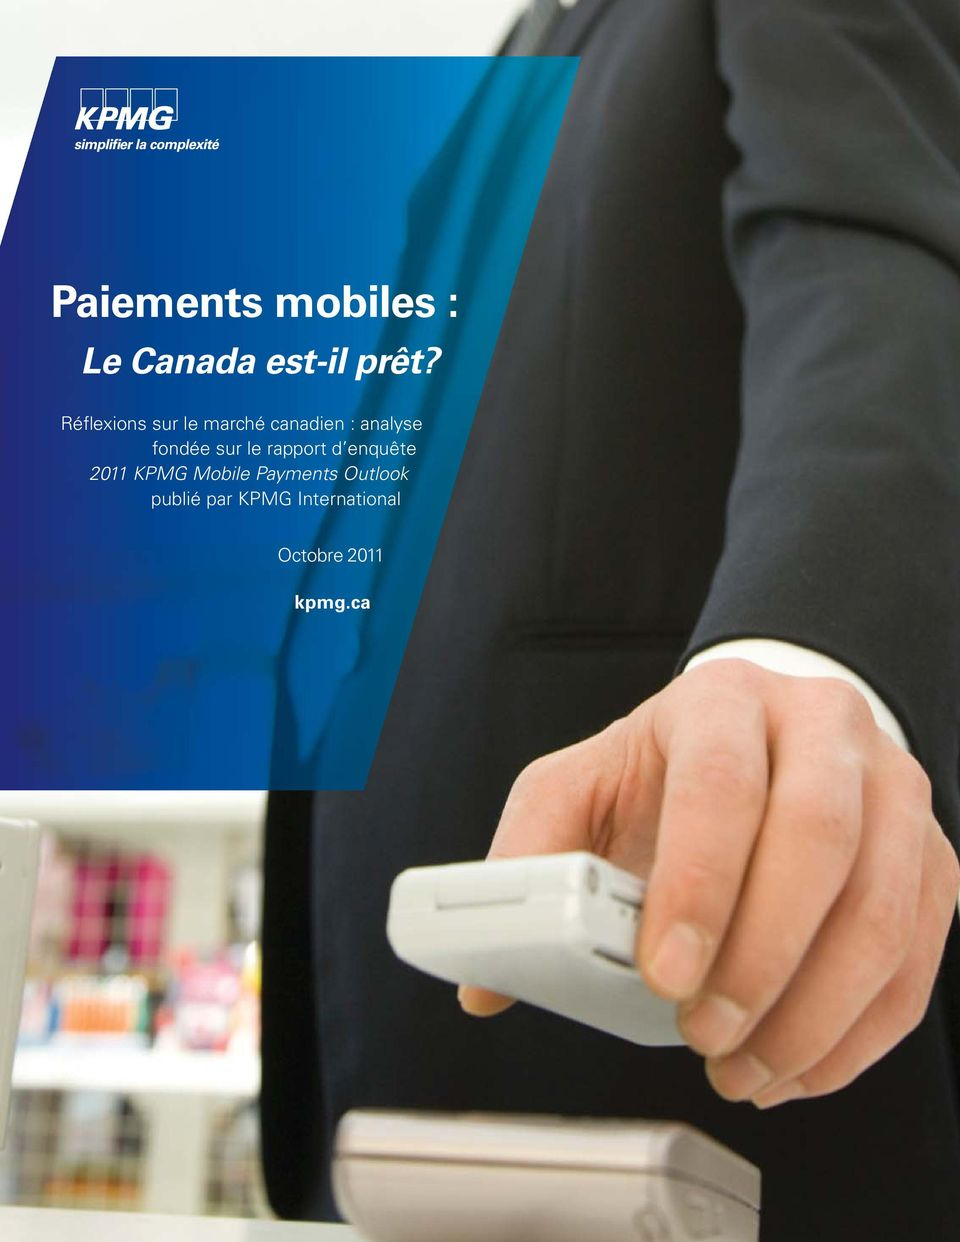 KPMG Additional Mobile information Payments in Outlook Univers publié 45 par Light KPMG